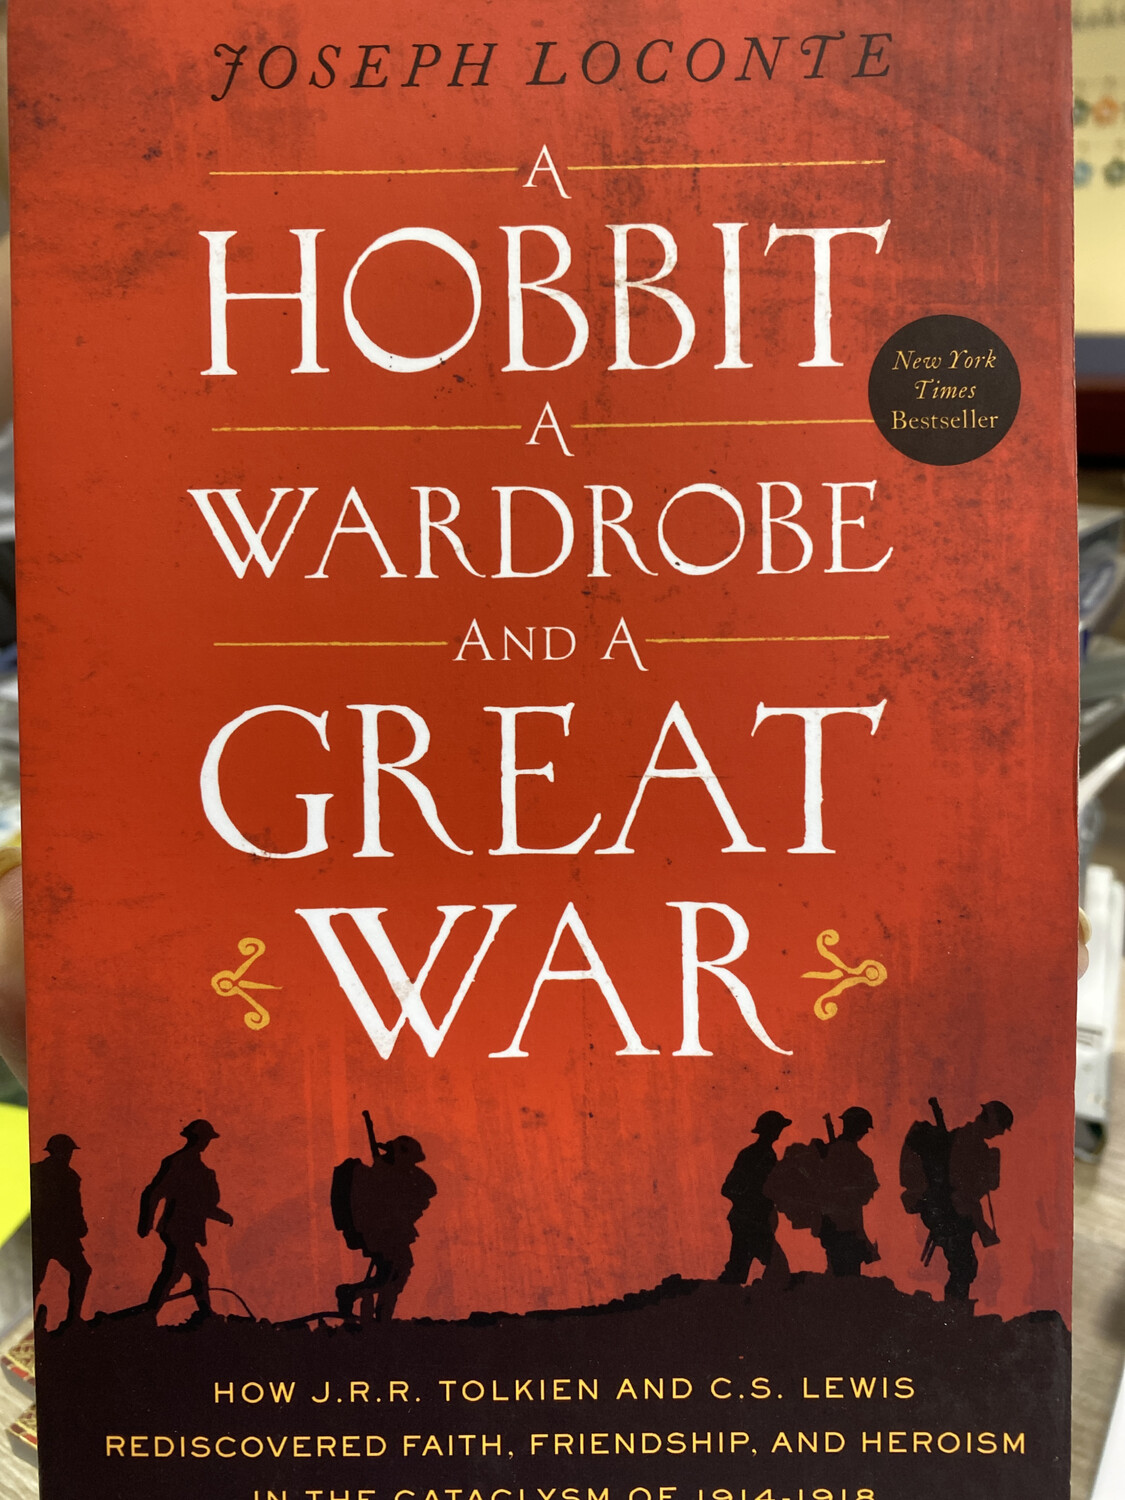 LOCONTE, A Hobbit A Wardrobe And A Great War